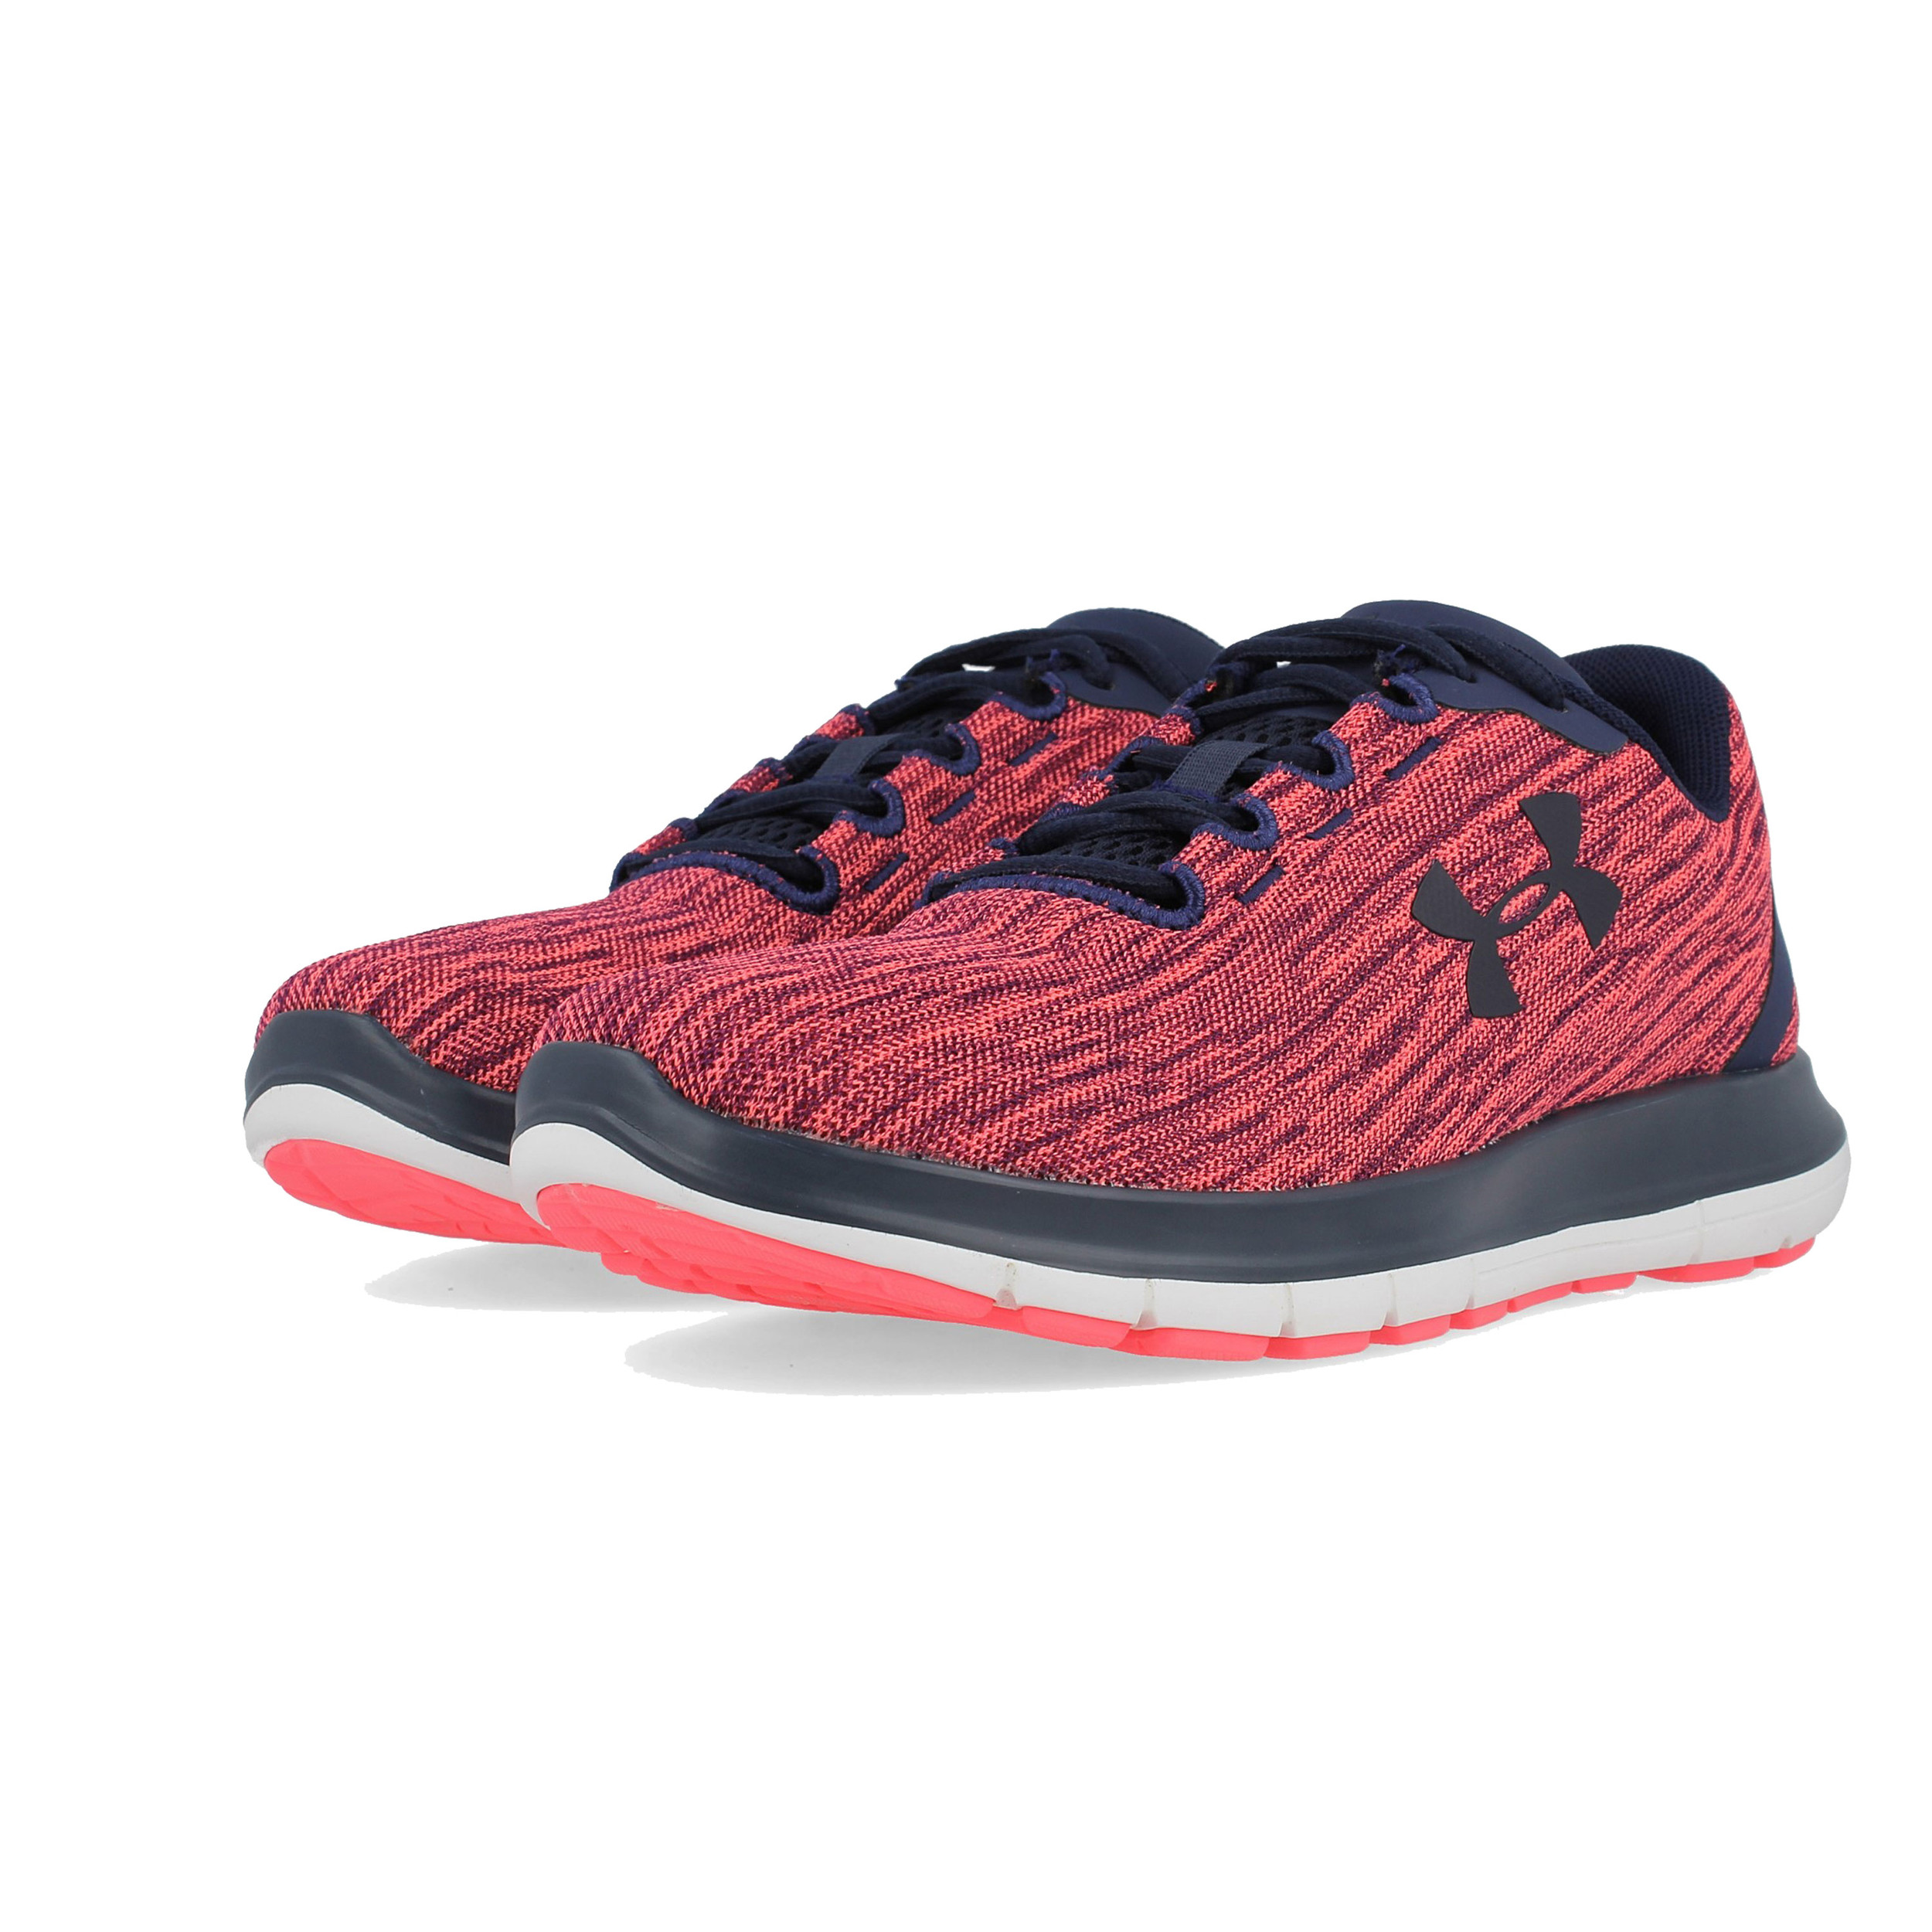 6f750de552 Details about Under Armour Womens Remix Running Shoes Trainers Sneakers Red  Sports Breathable